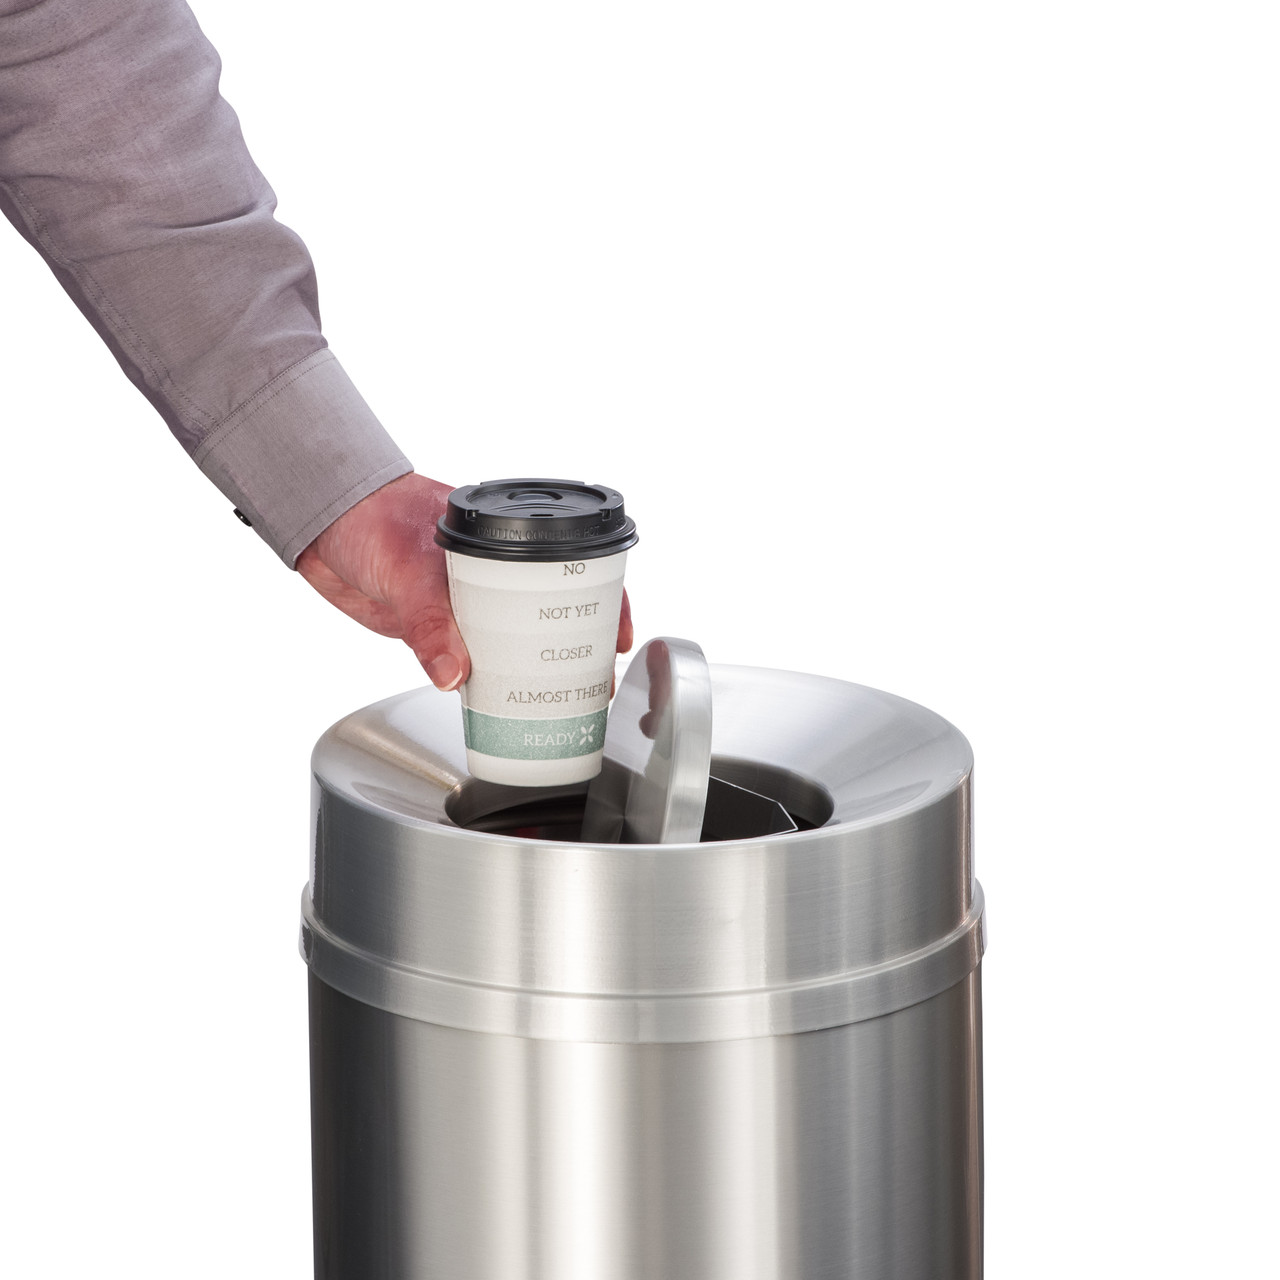 Flip Top to Conceal Odors